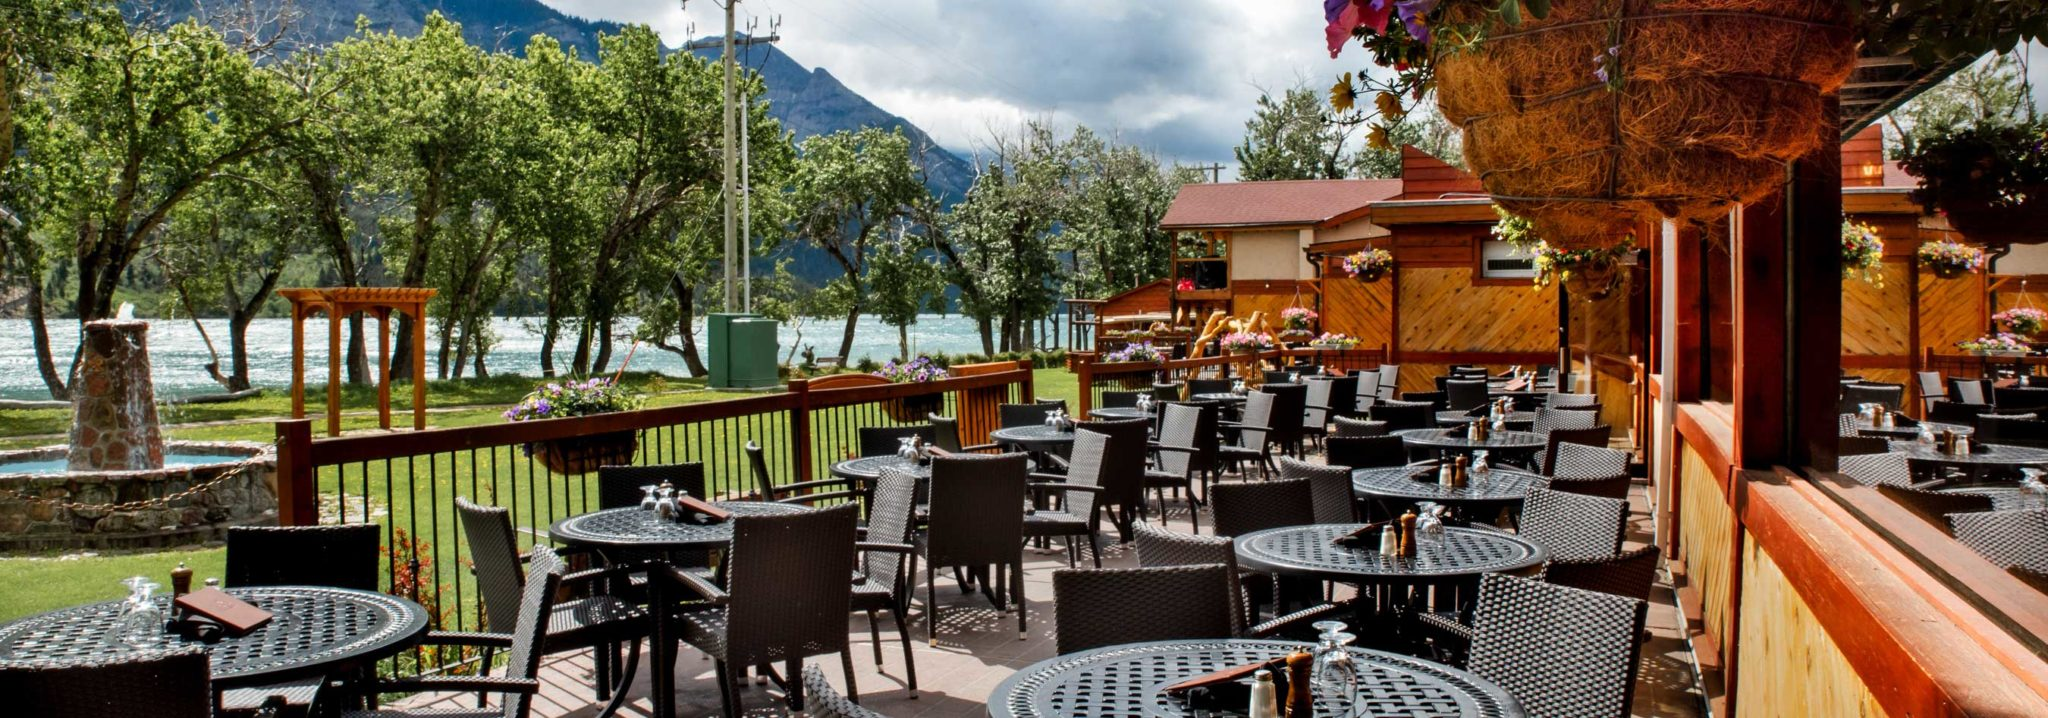 Lakesidechophouse Patio Watertonlakes